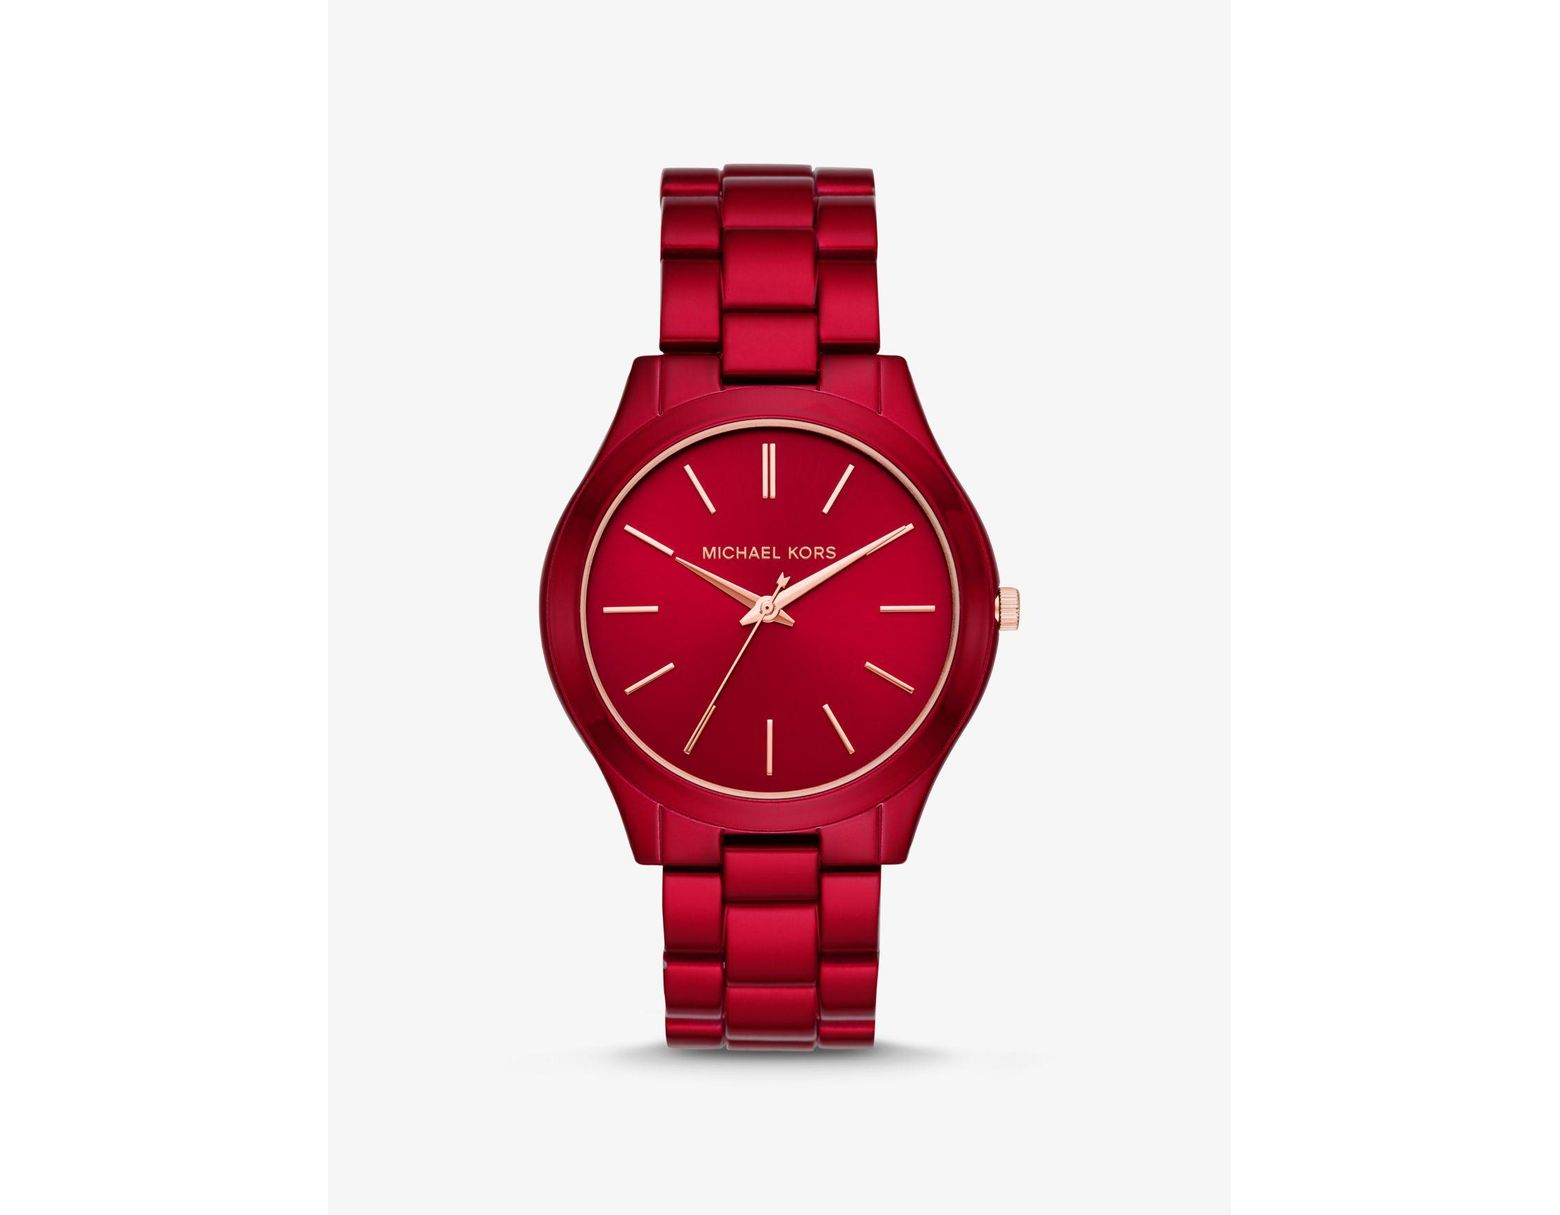 1a2bbd8c5 Michael Kors Women's Slim Runway Three-hand Red-coated Stainless Steel Watch  in Red - Lyst